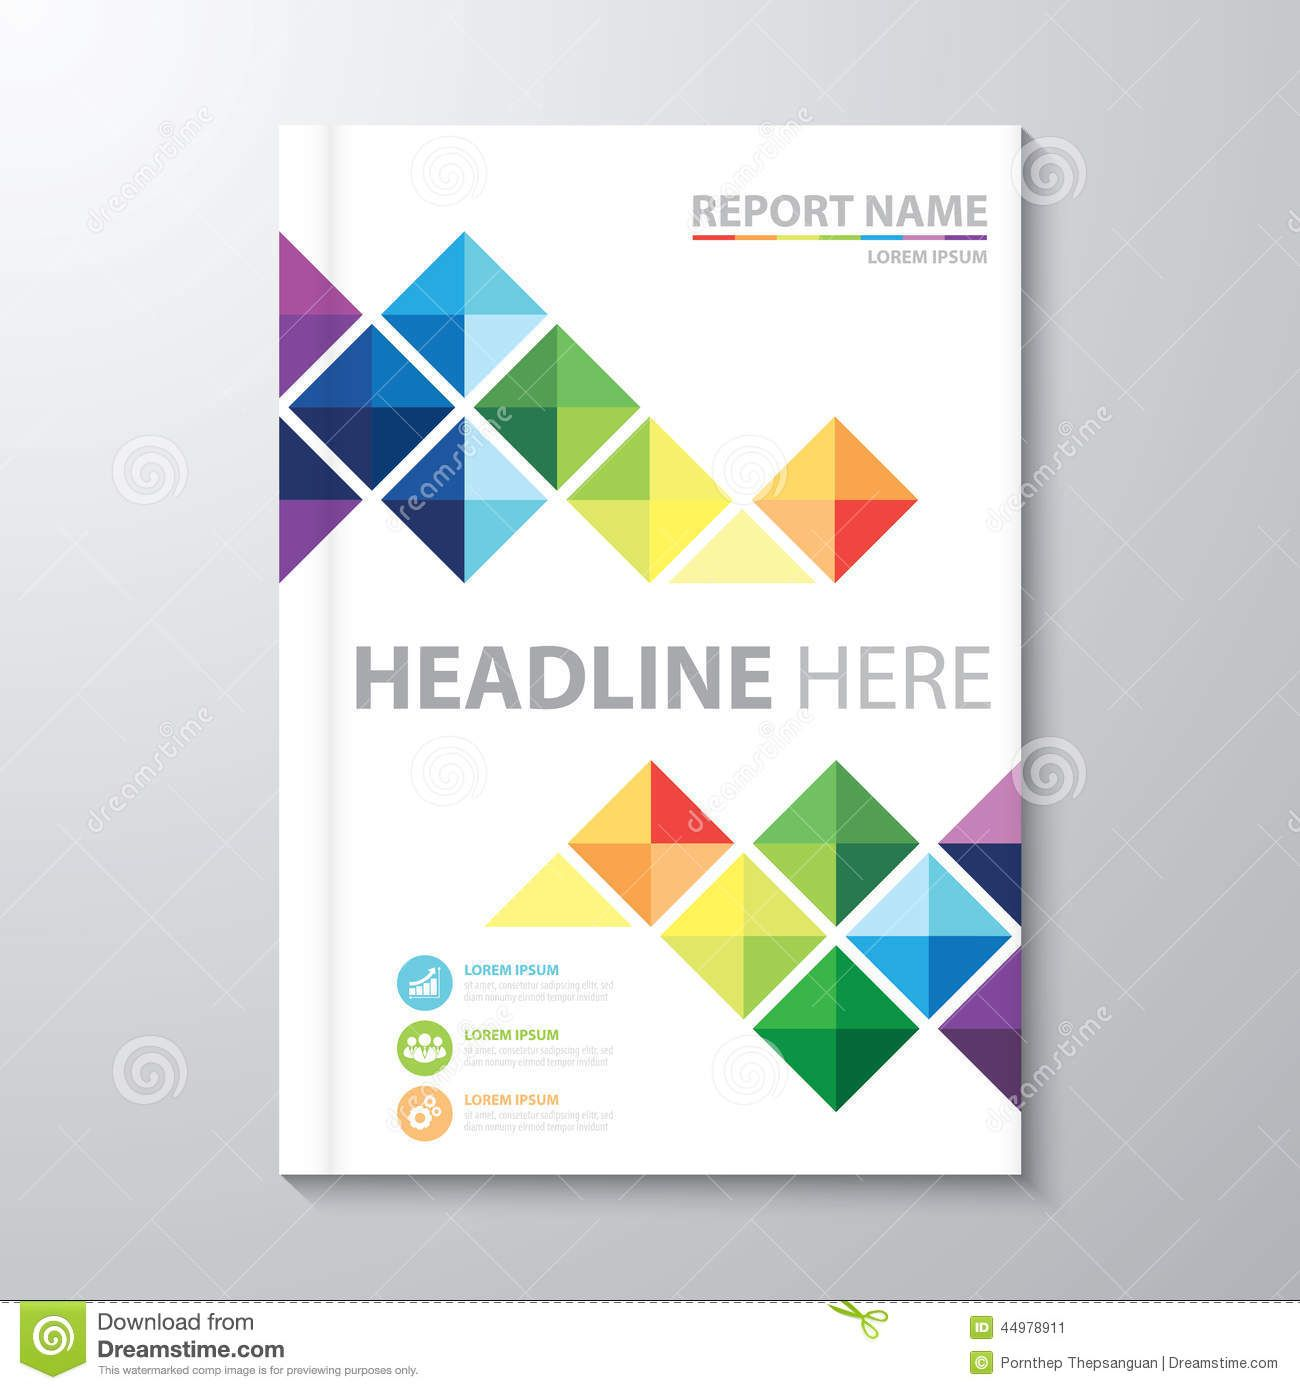 Attractive Annual Report Cover Design Template Idea Cover Template